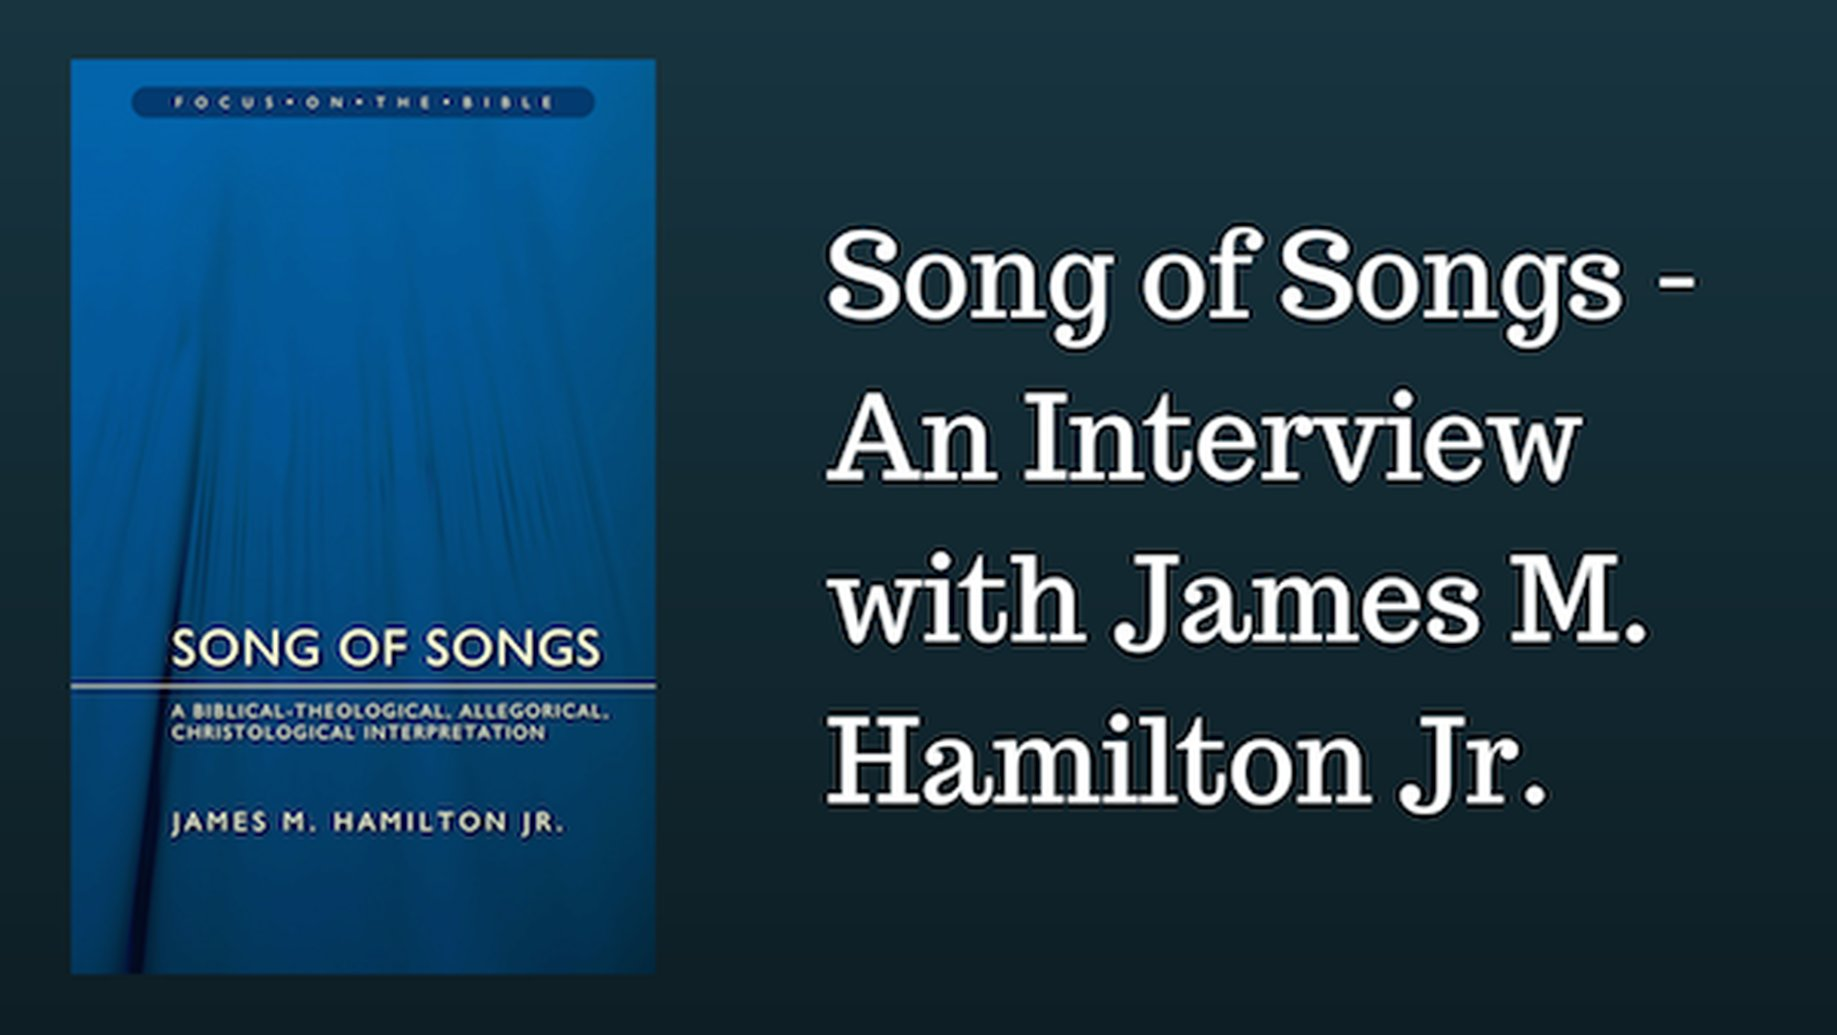 Song of Songs - An Interview with James M. Hamilton Jr.